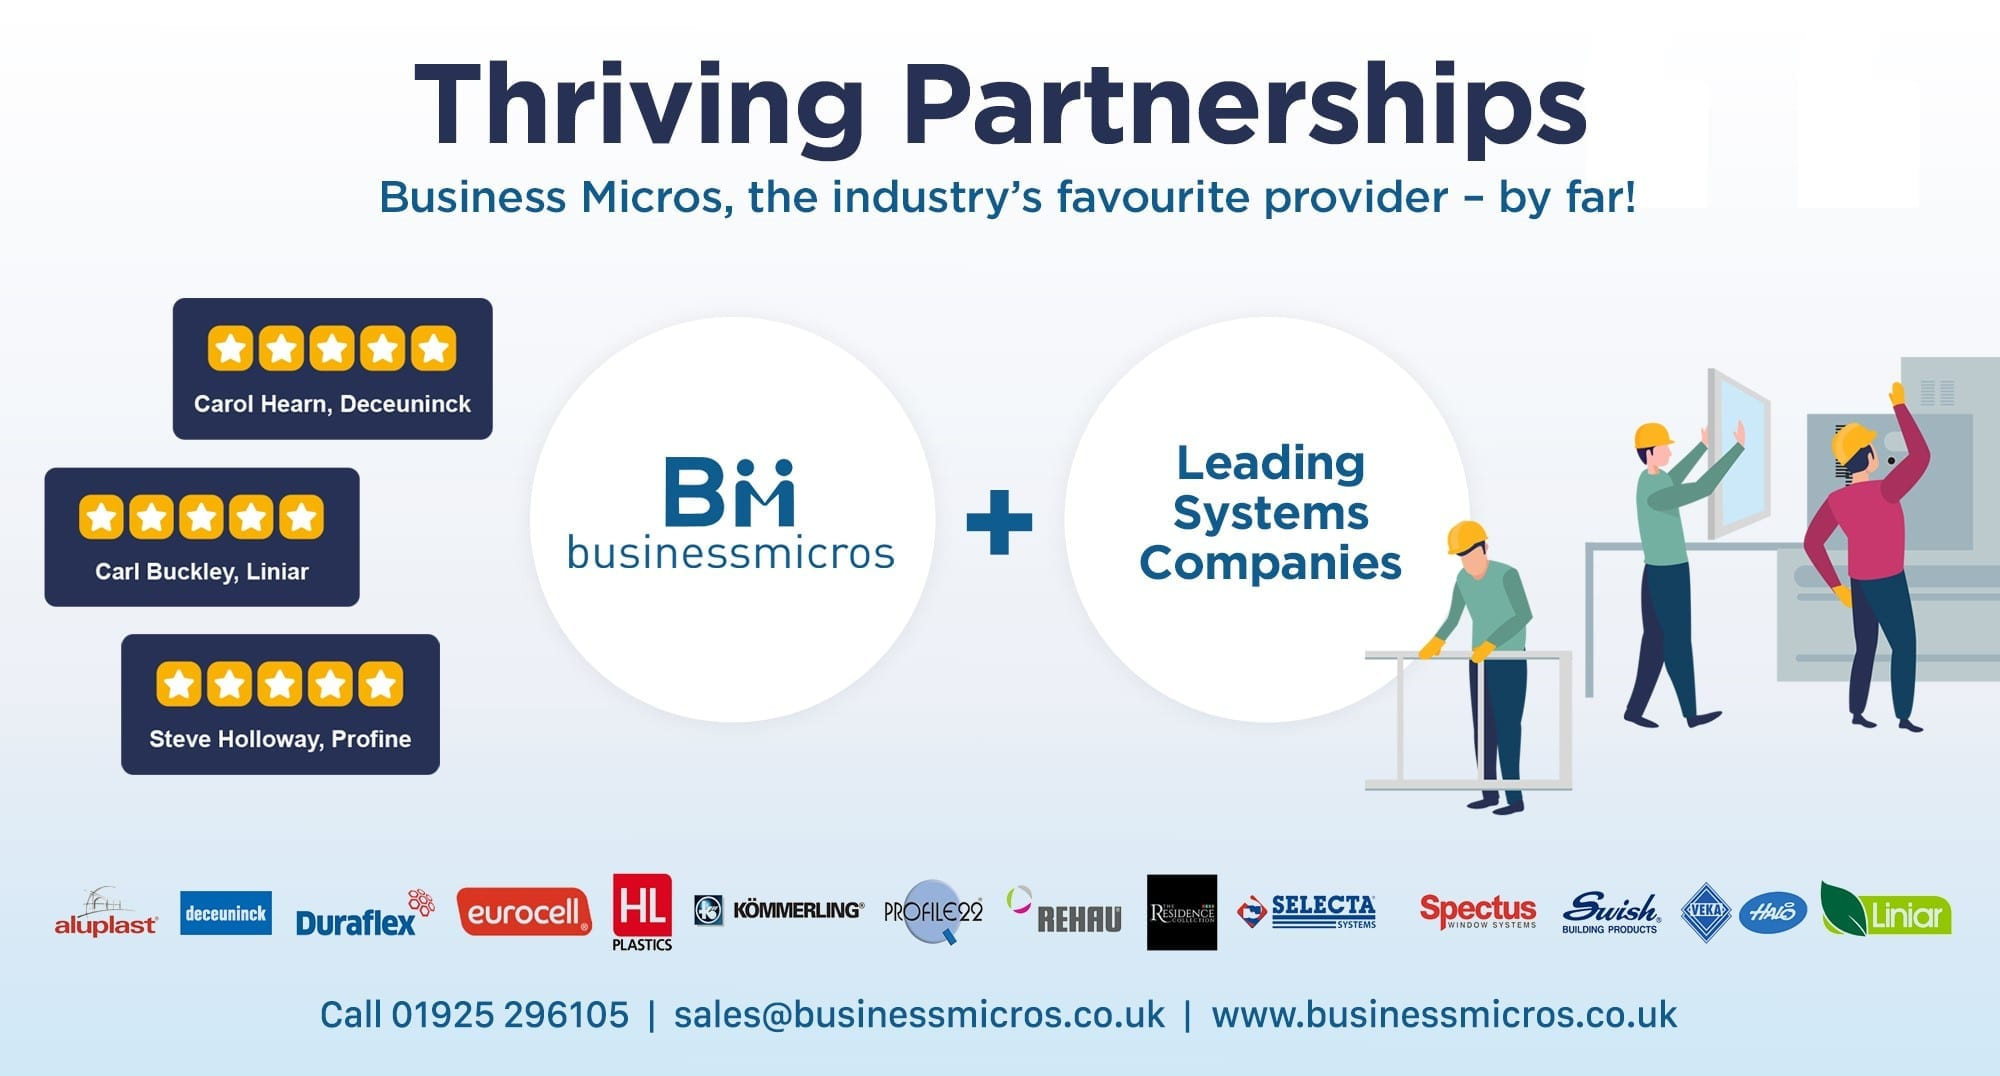 Business Micros | thriving partnerships linkedin